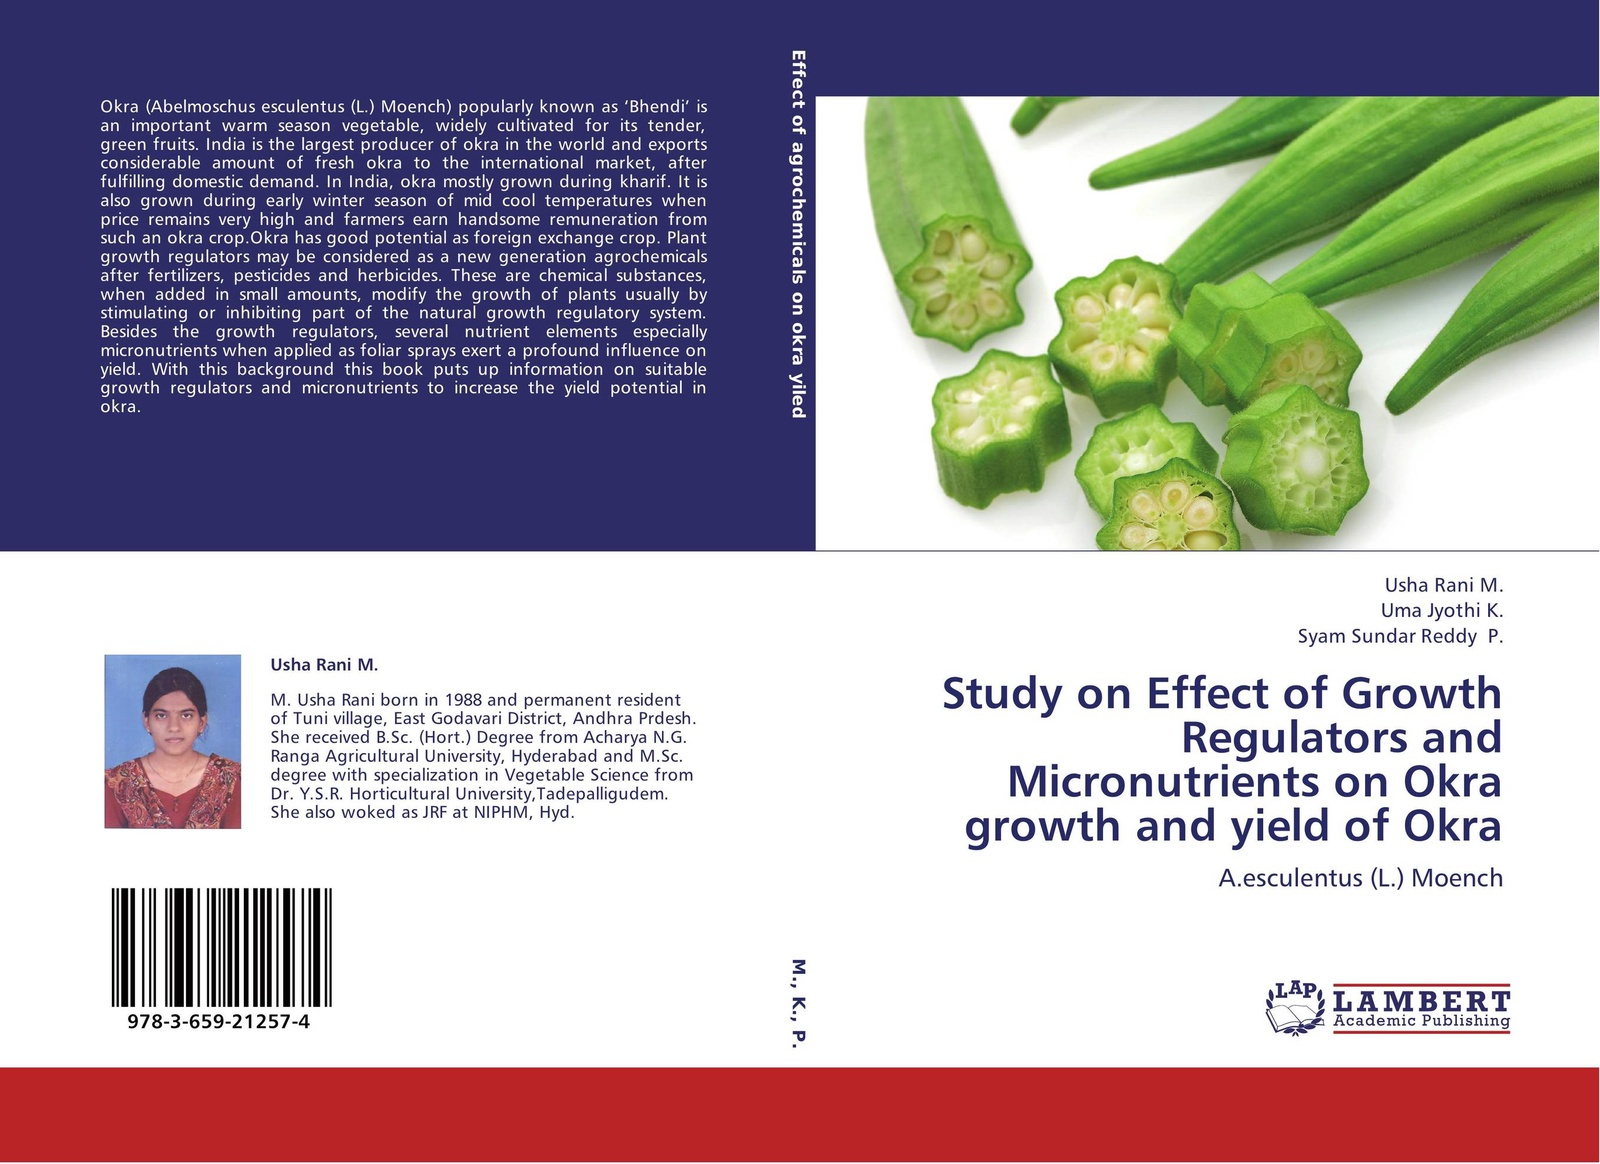 Usha Rani M.,Uma Jyothi K. and Syam Sundar Reddy P. Study on Effect of Growth Regulators and Micronutrients on Okra growth and yield of Okra genetic studies in okra